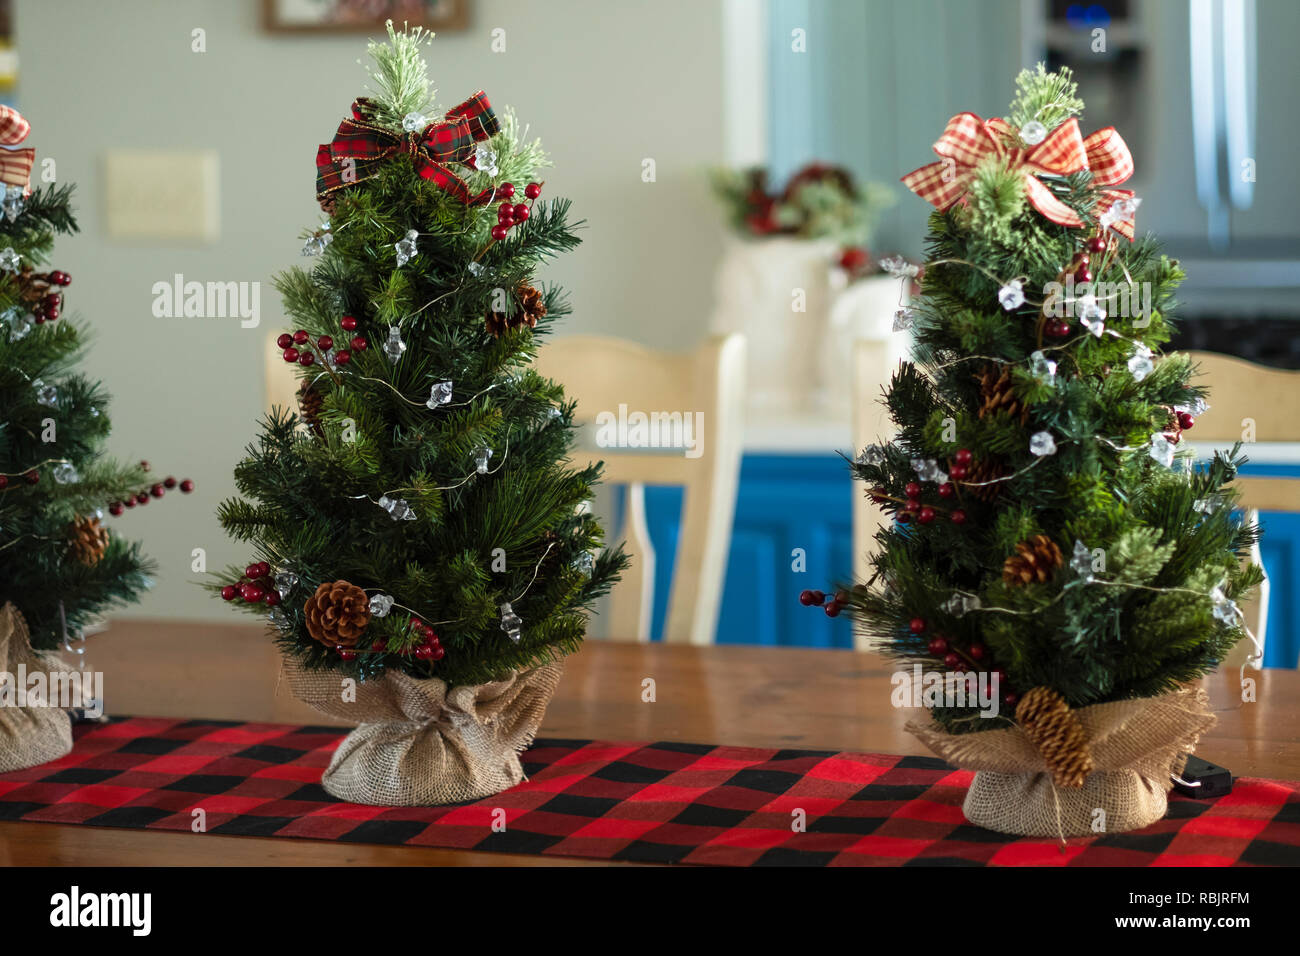 Three Minature Tabletop Christmas Trees With Burlap On A Red And Black Table Runner Indoor Christmas Decor Stock Photo Alamy